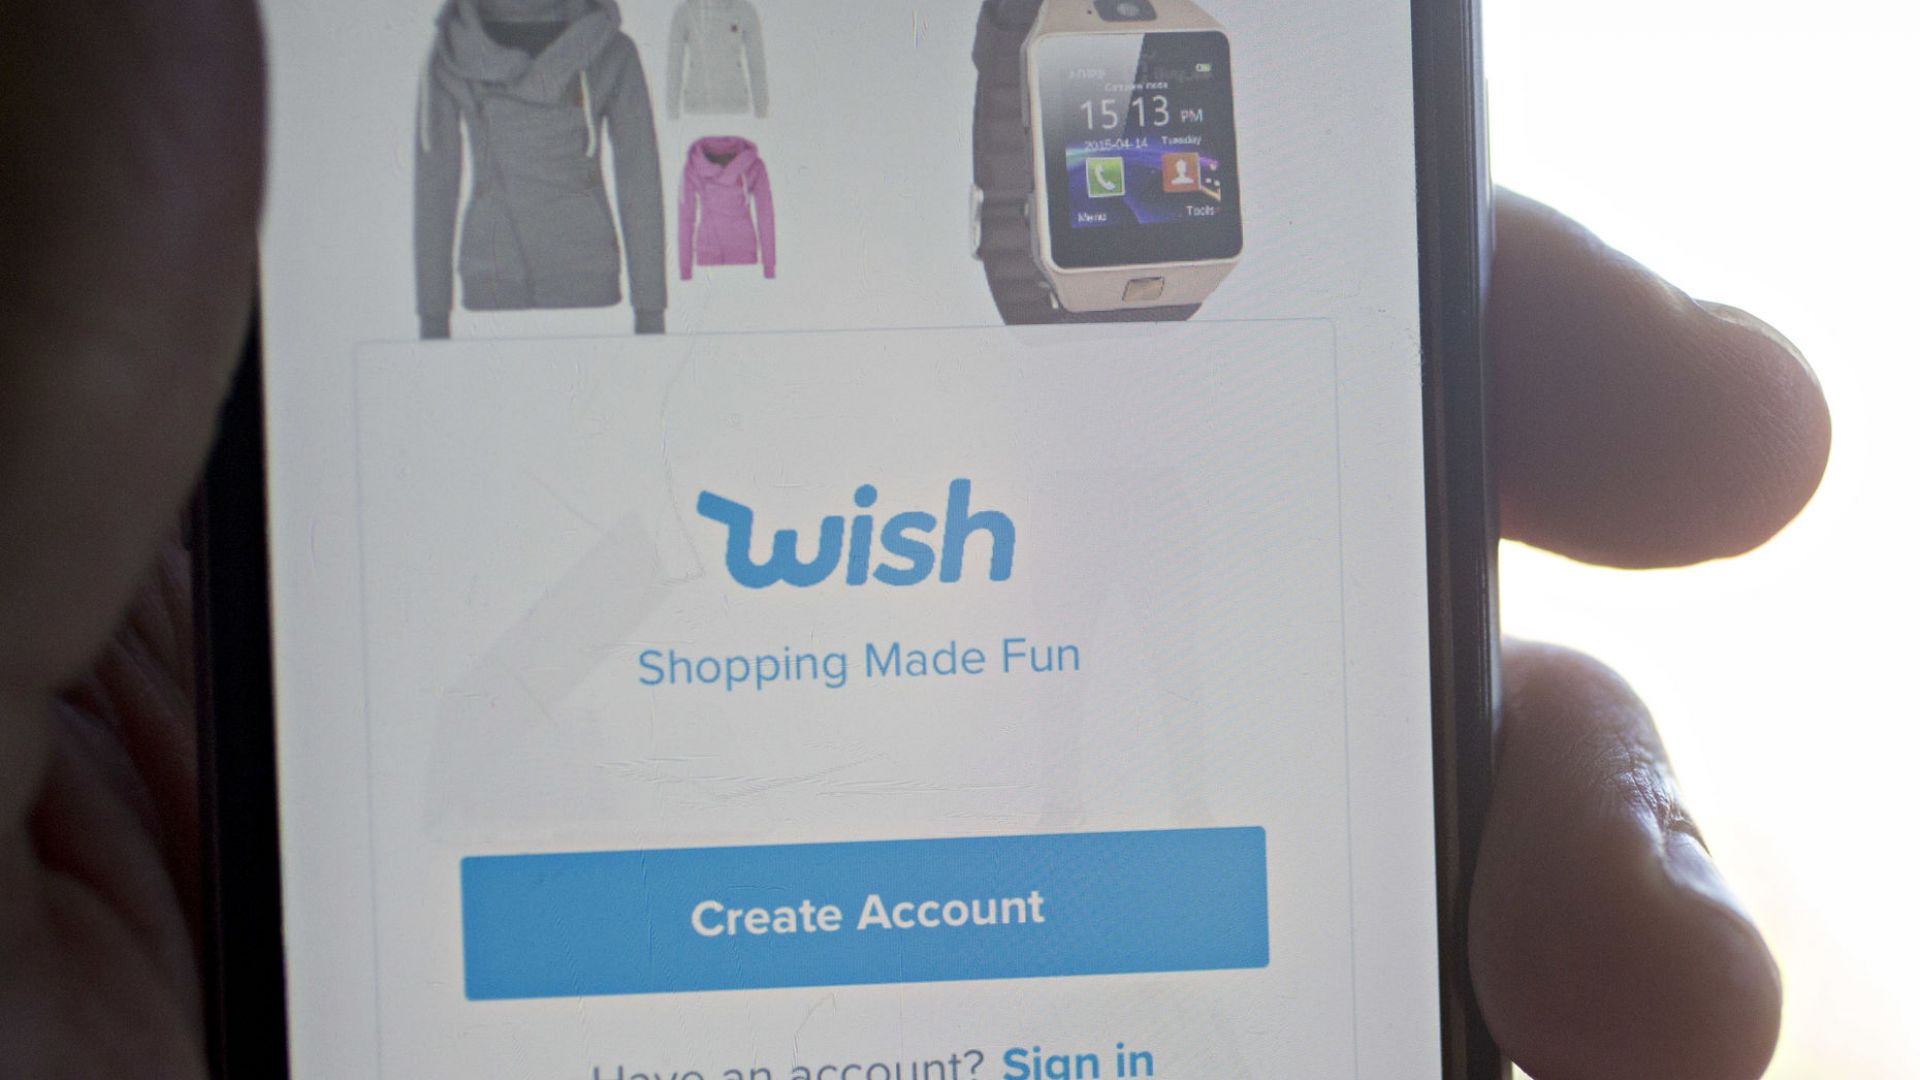 Wish - Shopping Made Fun